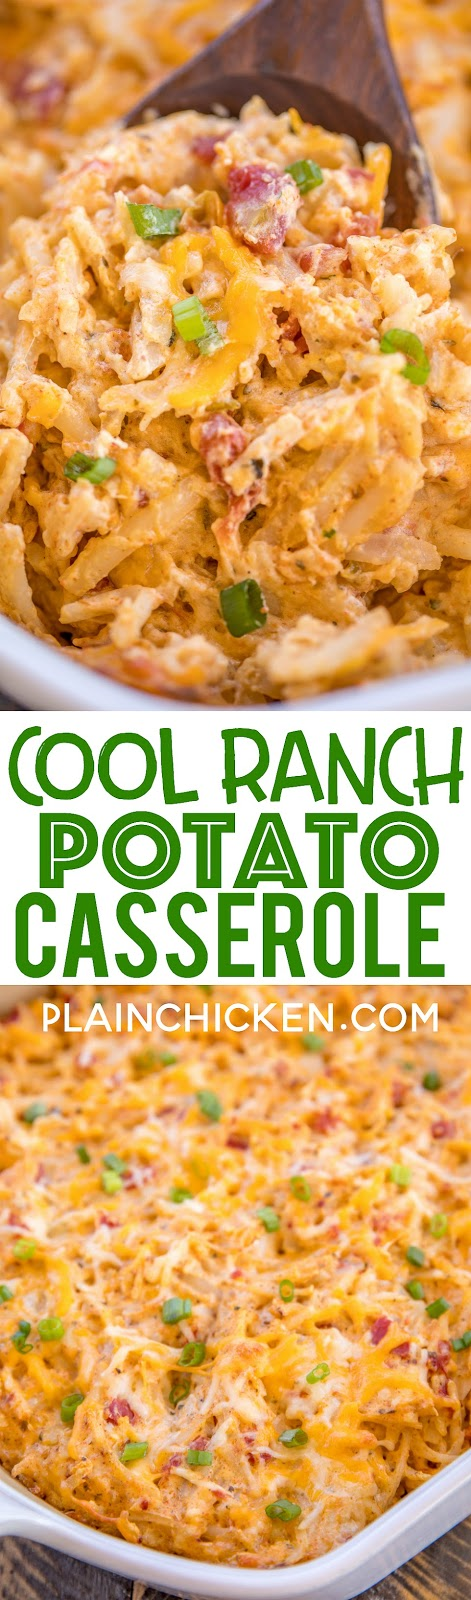 Cool Ranch Potato Casserole - great make ahead and freezer side dish! Potatoes loaded with taco seasoning, ranch and diced tomatoes and green chiles. Great for potlucks! Shredded frozen hash browns, cream of chicken soup, sour cream, diced tomatoes and green chiles, cheddar cheese, taco seasoning and ranch dressing mix. Our whole family went crazy over this easy potato casserole!! Great for taco night! #casserole #potatocasserole #mexicanrecipe #taconight